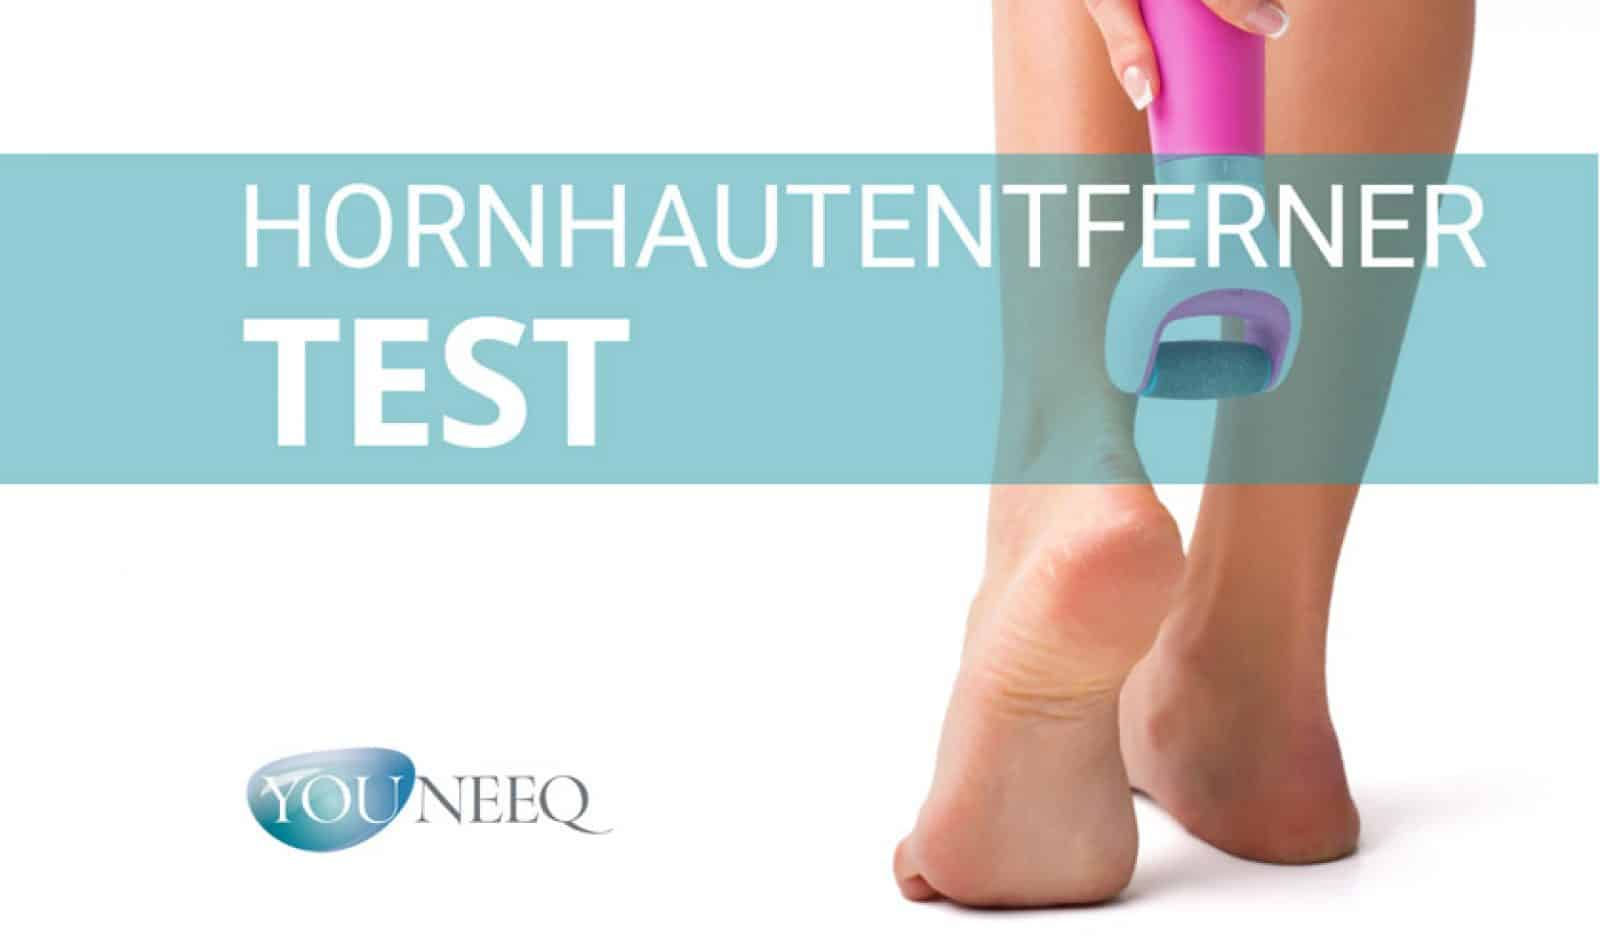 Hornhautentferner Test Youneeq